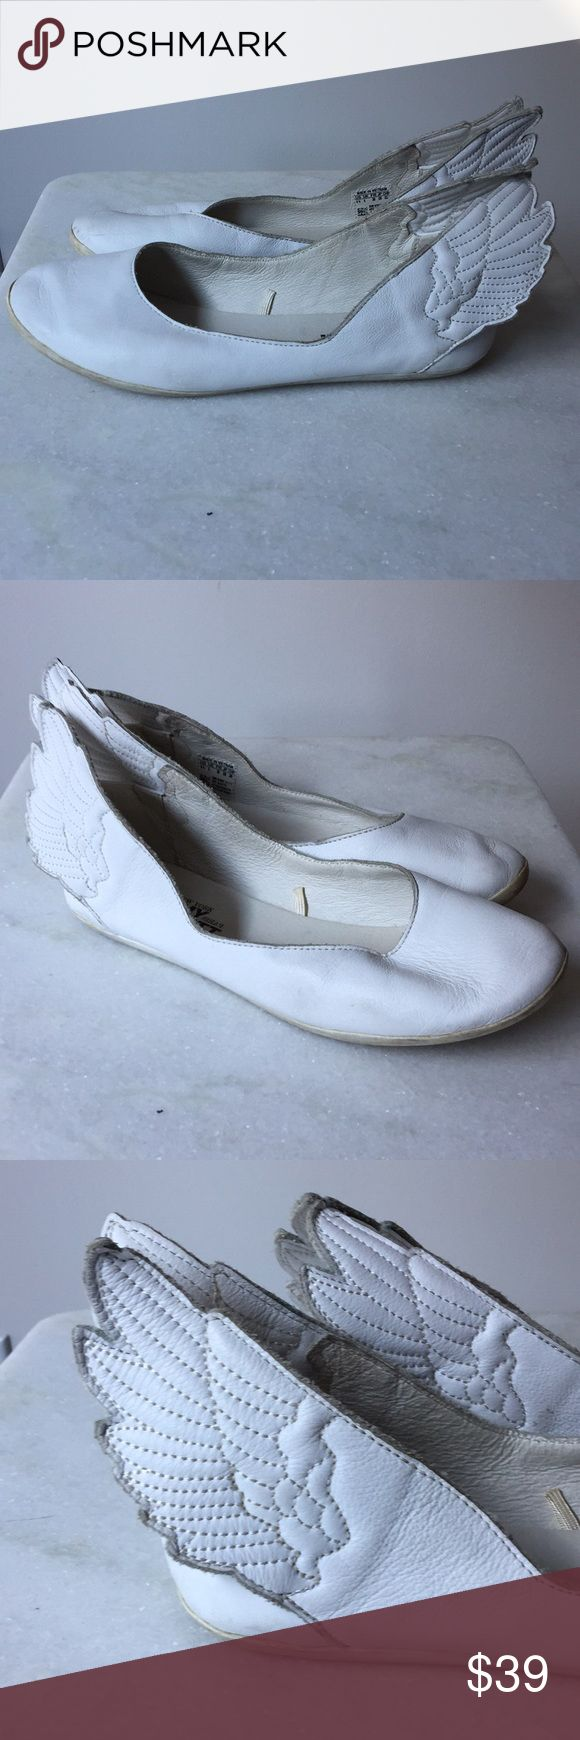 JEREMY SCOTT x ADIDAS Winged Ballerinas Used in Good Condition White Leather  Ballerina Flats Size 6.5 Jeremy Scott x Adidas Shoes Flats & Loafers